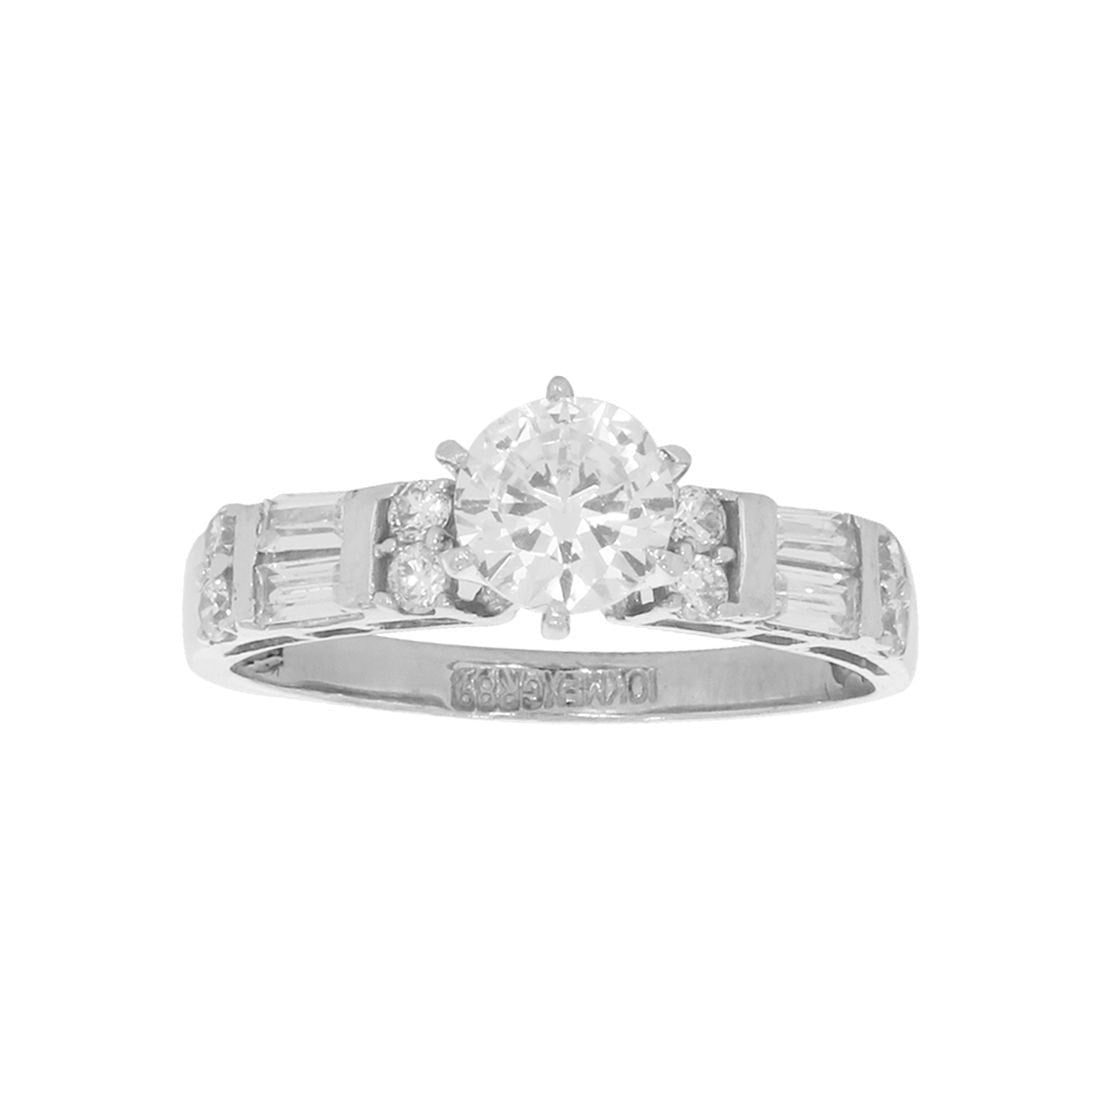 Anillo Oro Blanco 10k, con Zirconia Central de 6 mm, Laterales corte Baguette